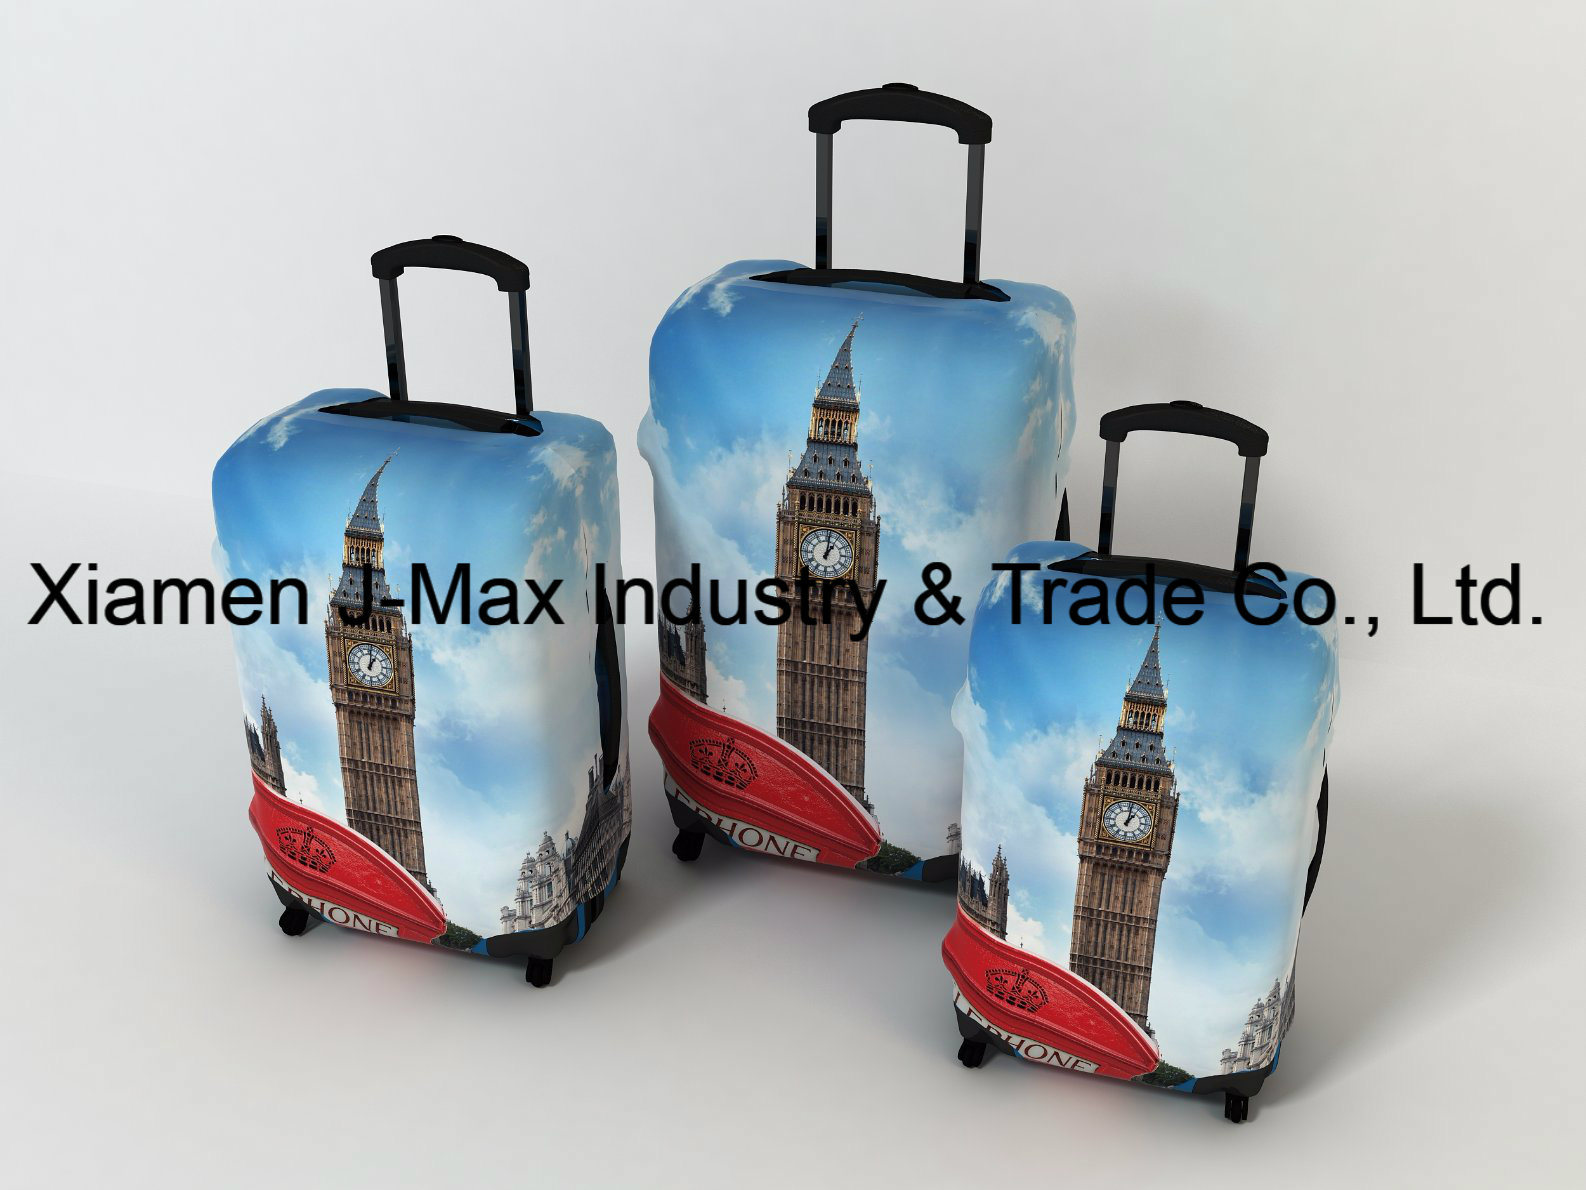 Spandex Travel Luggage Cover Fits 18-32 Inch Luggage, High Elastic, Washable, Comes in Various Printings, Trolley Cover, Germany